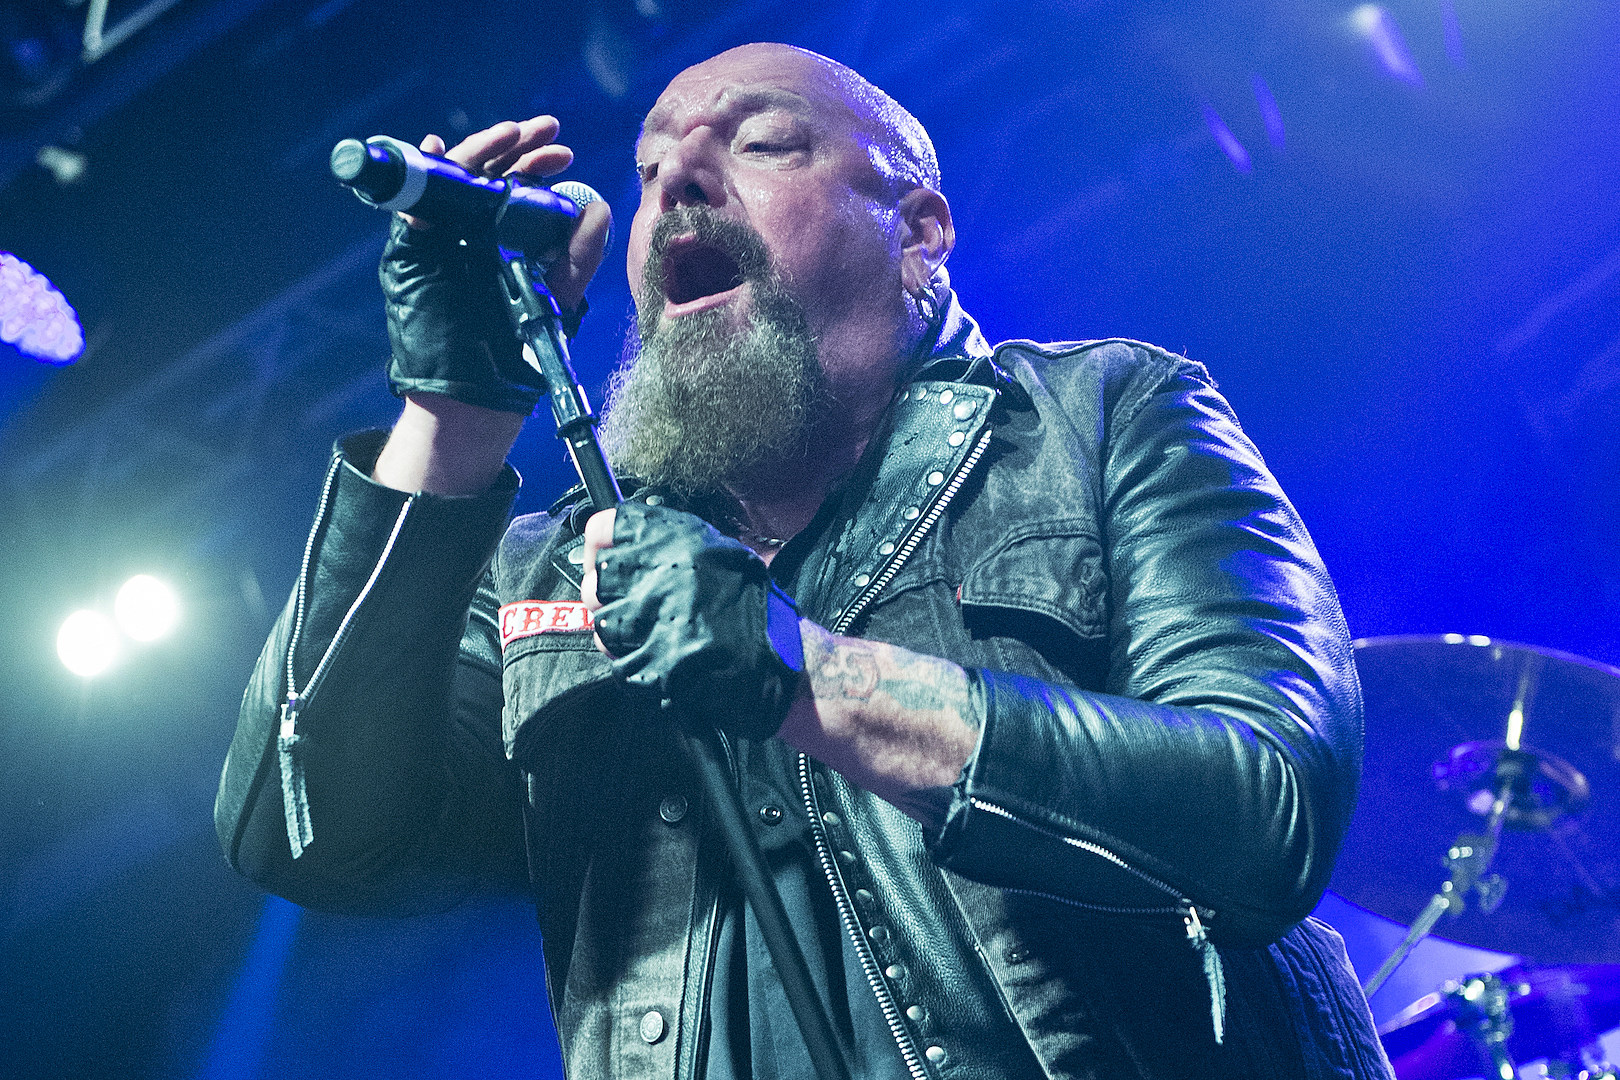 Former Iron Maiden Singer Paul Di'Anno: I Was 45 Minutes From Death